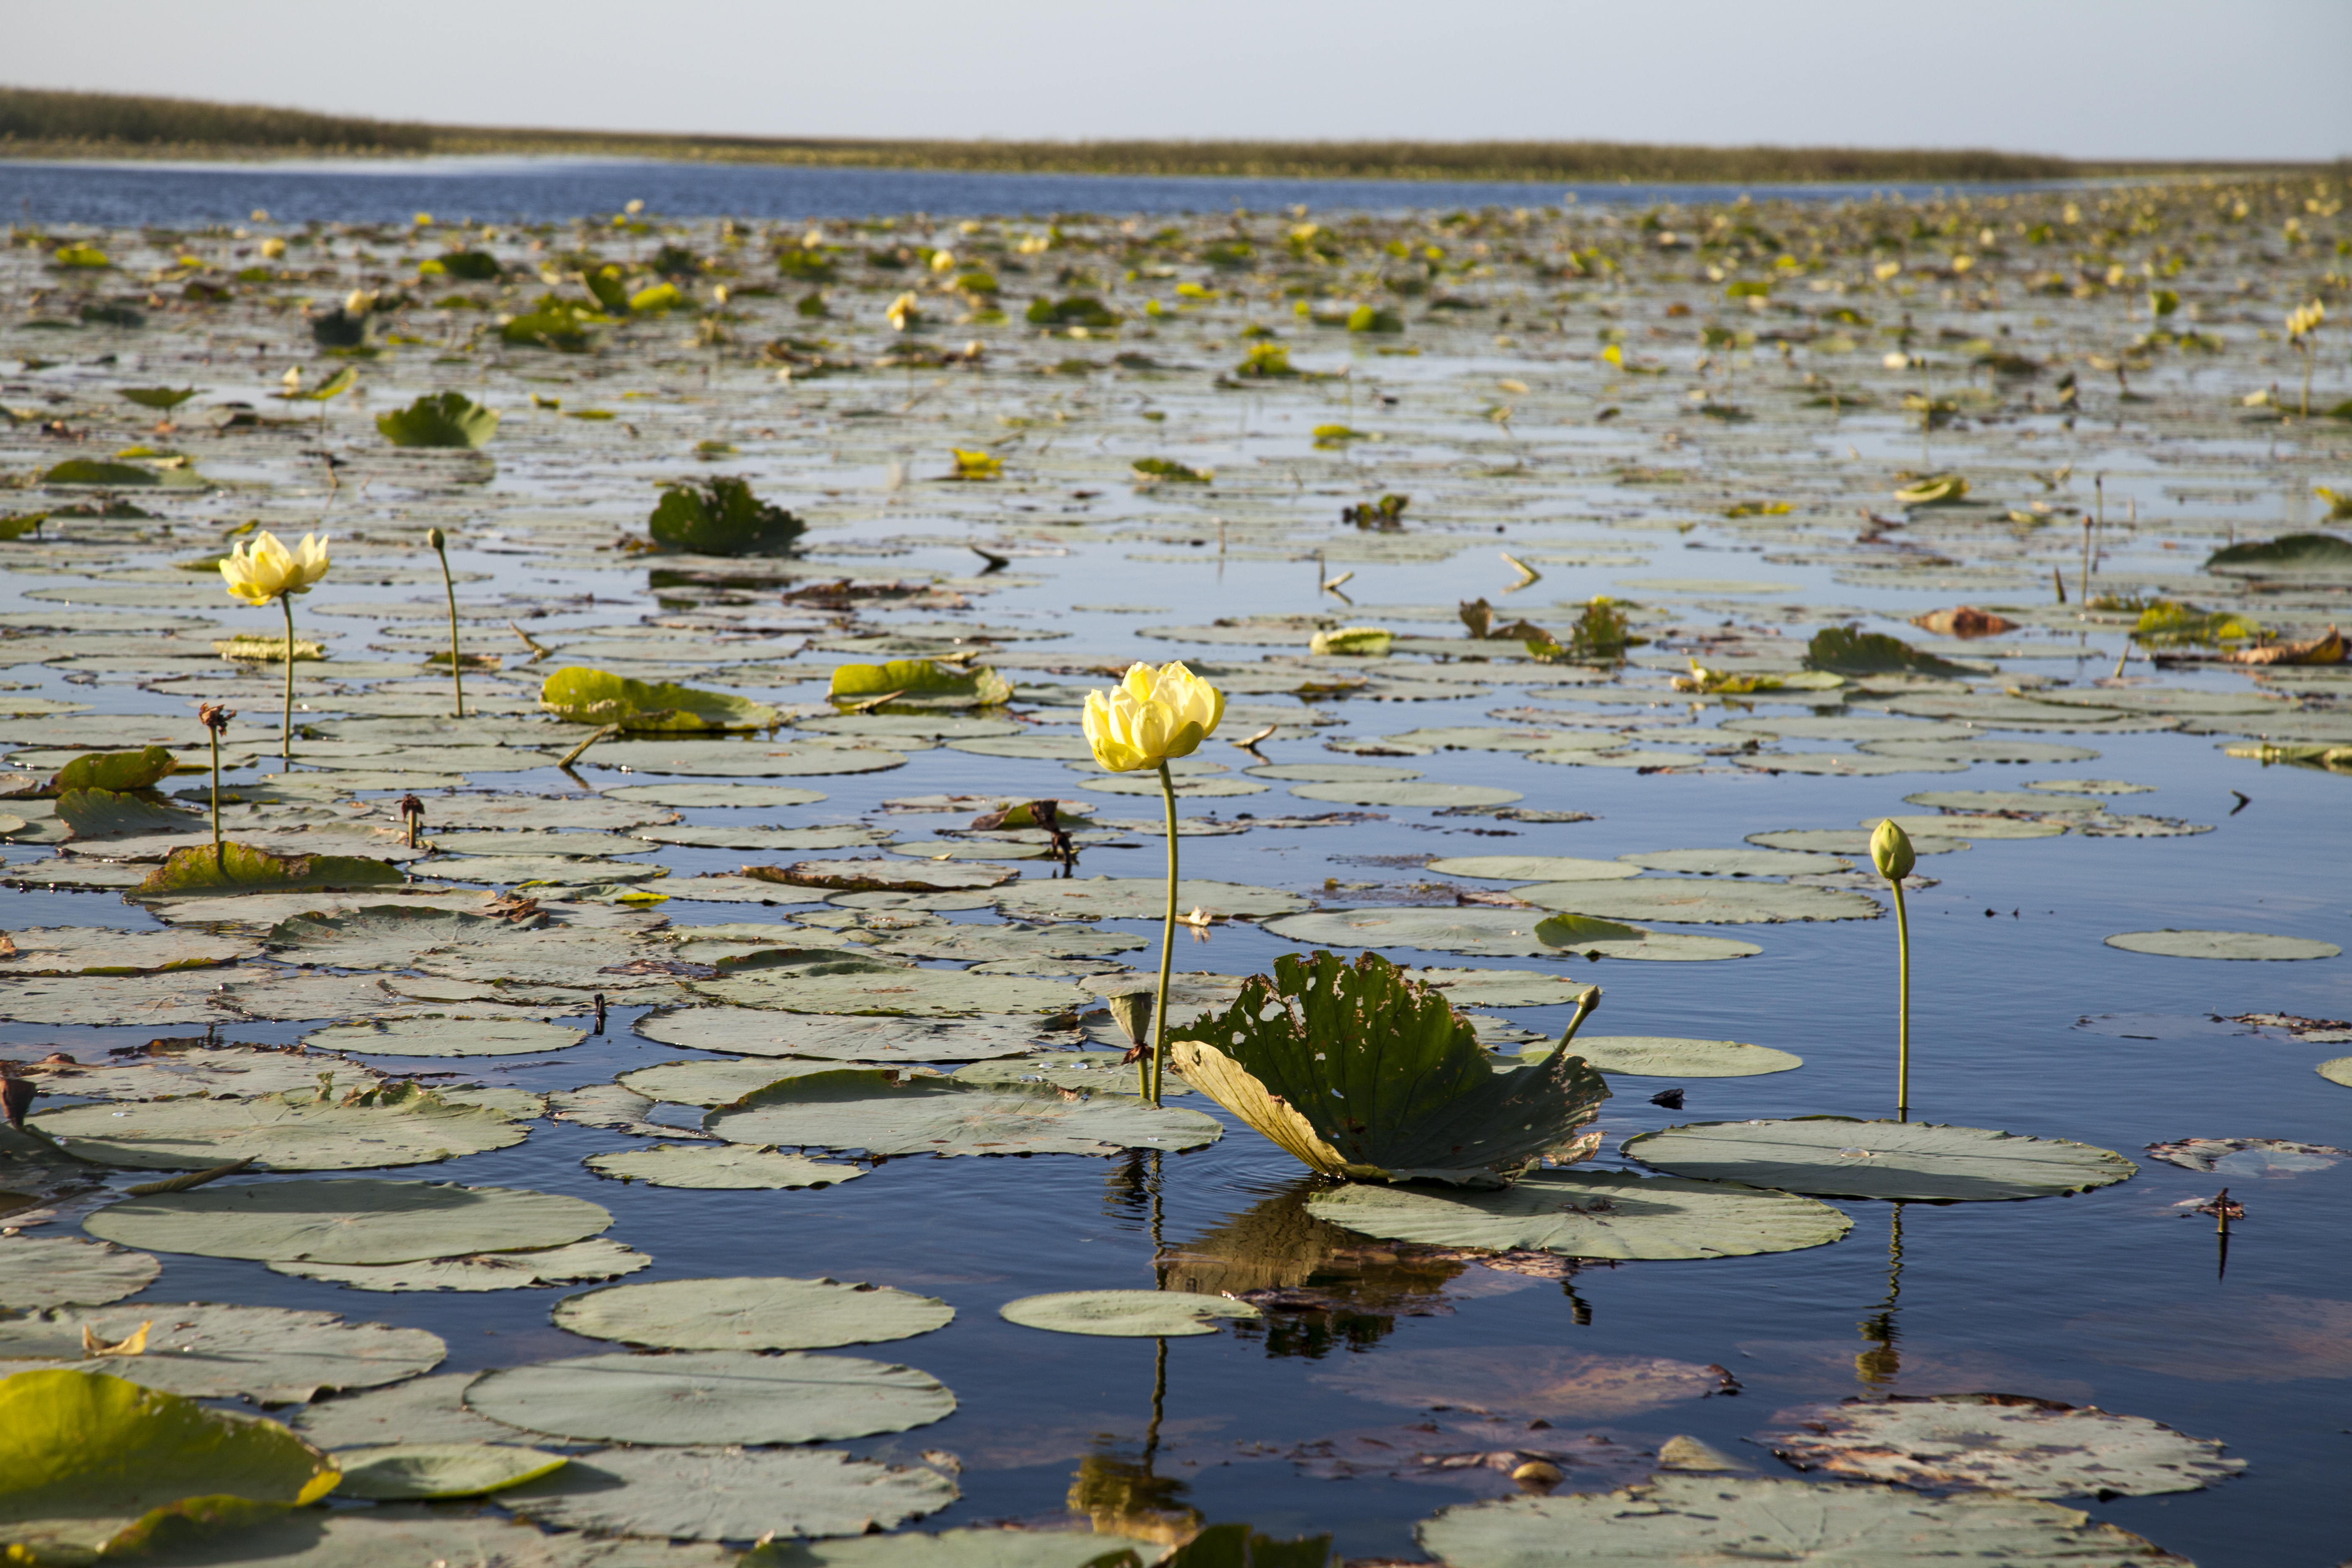 Blooming Lotus over the Swamp